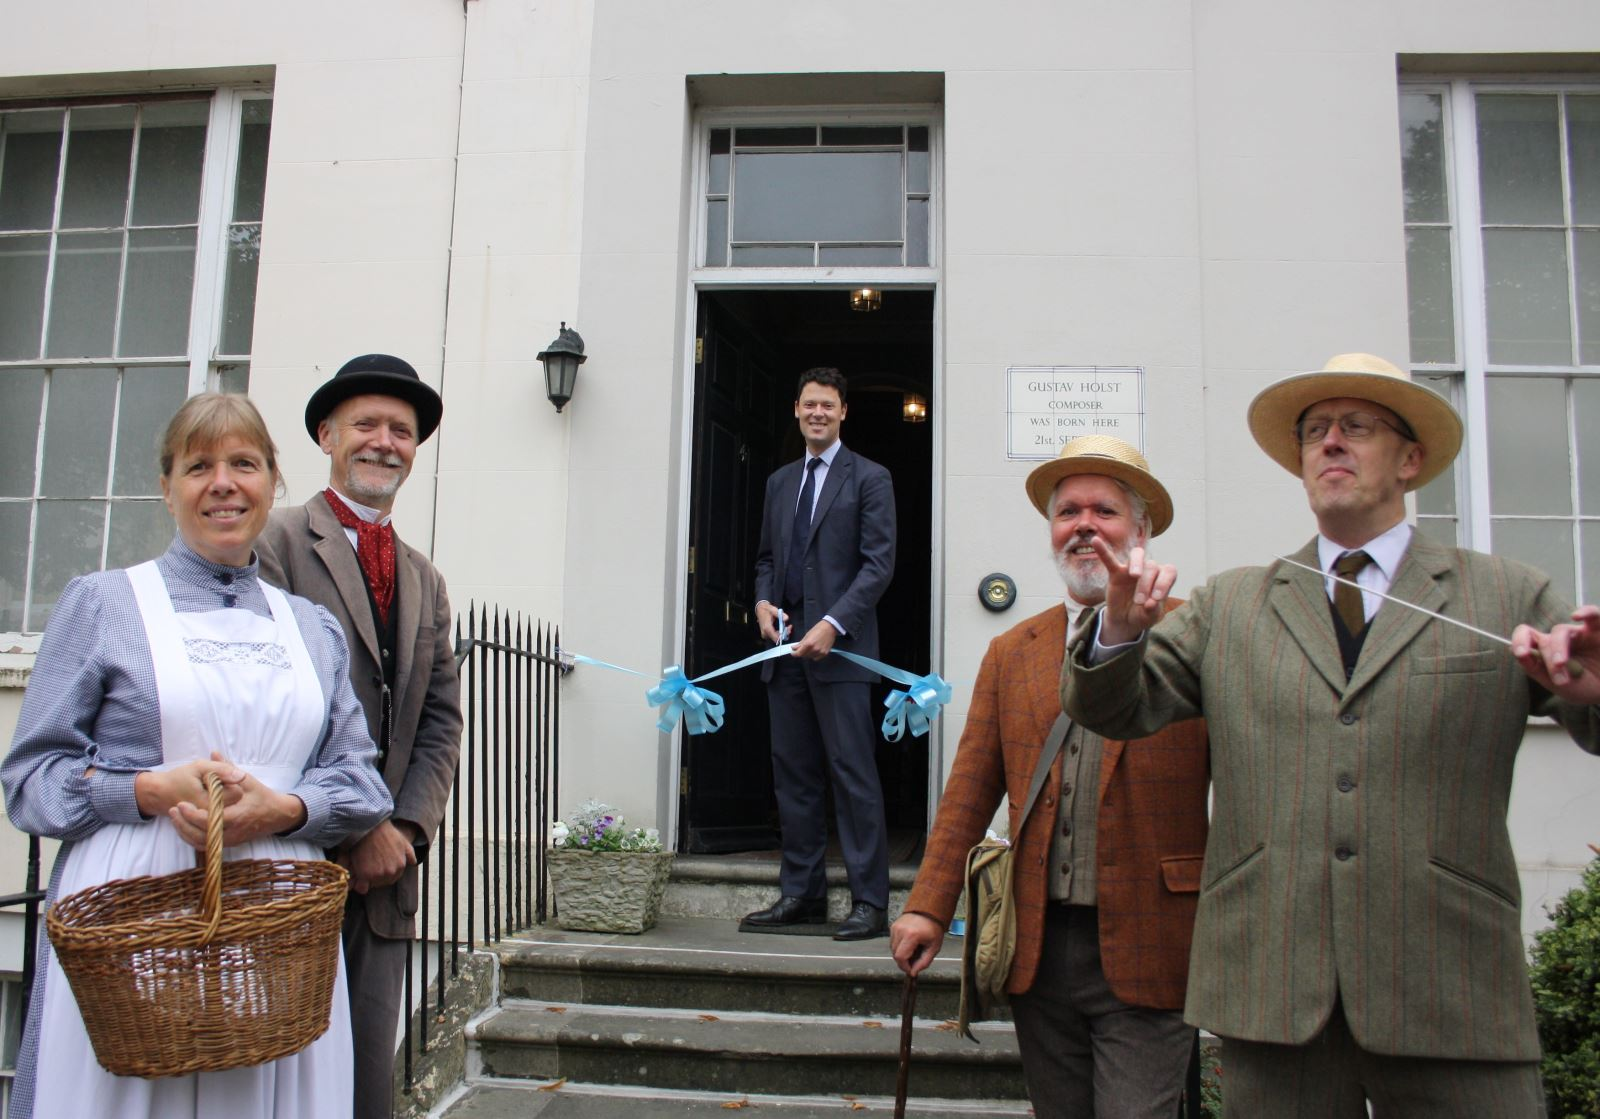 Holst birth place museum reopening celebration